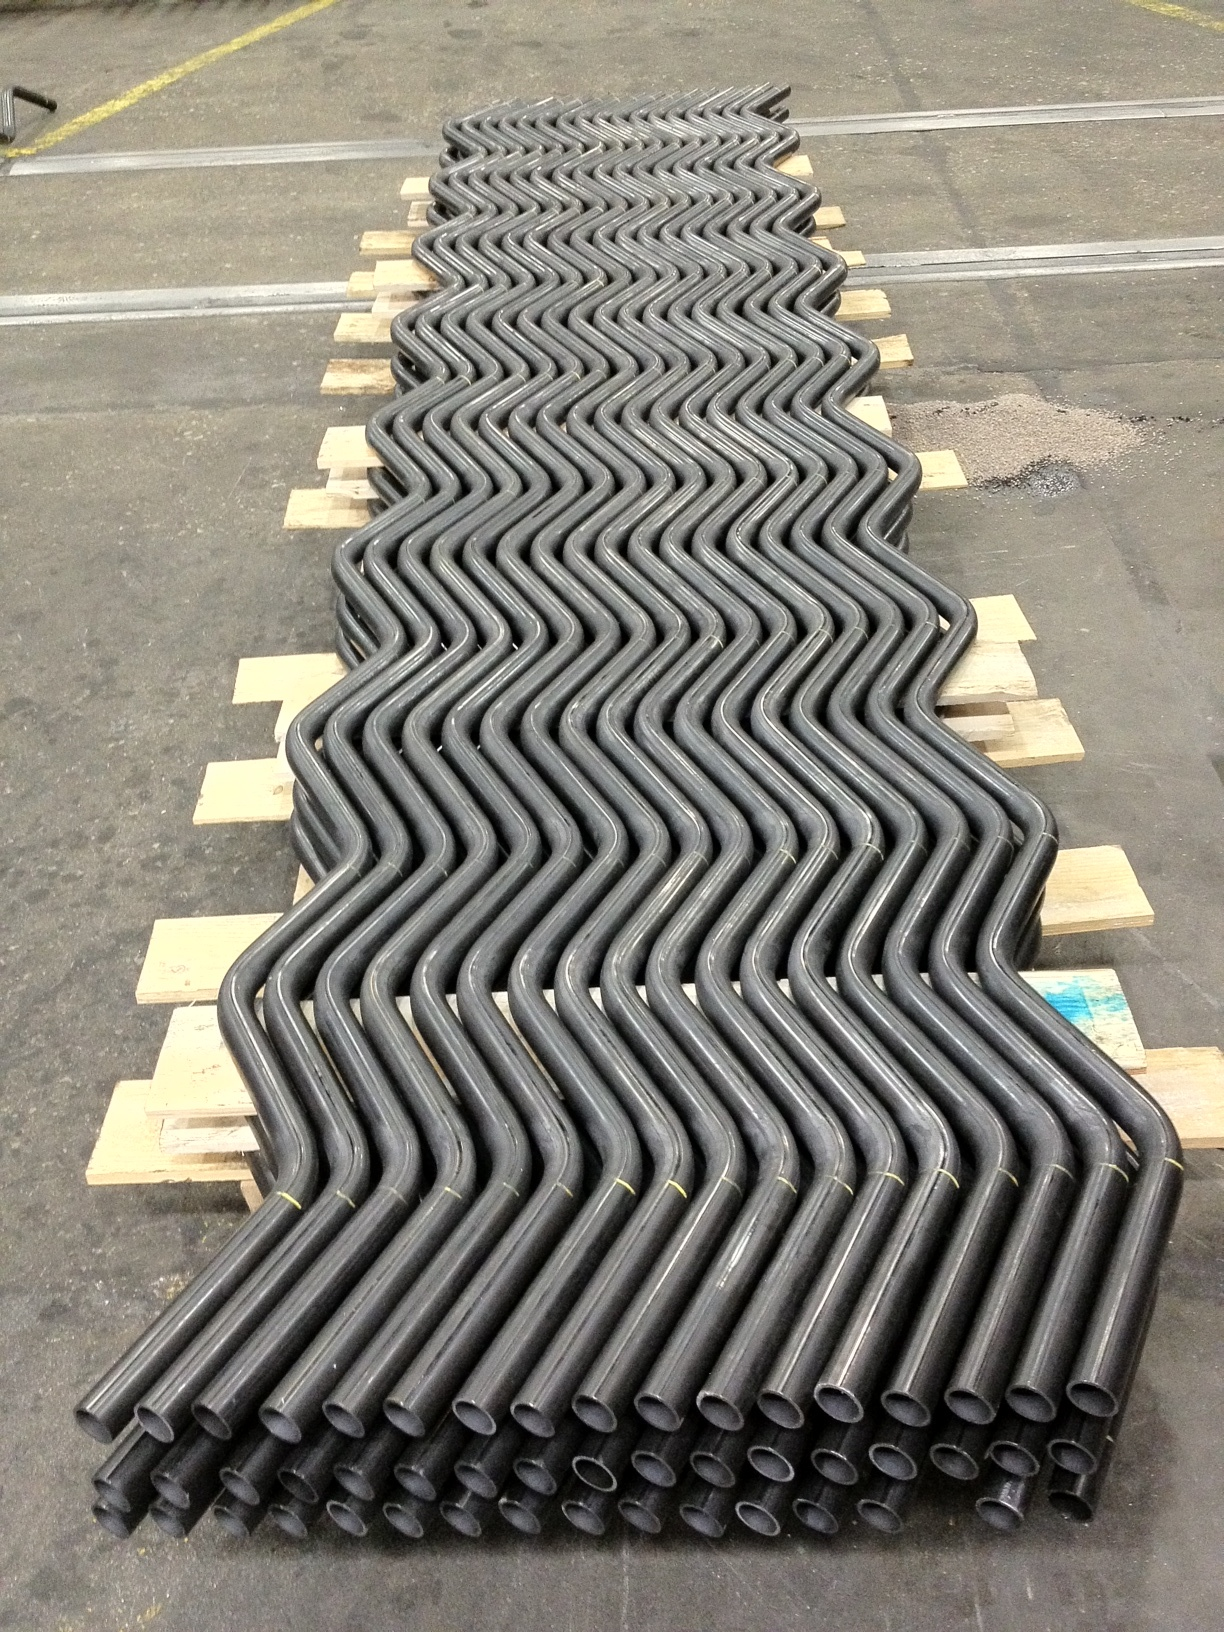 Bending Pipes Bending Bars Chicago Metal Rolled